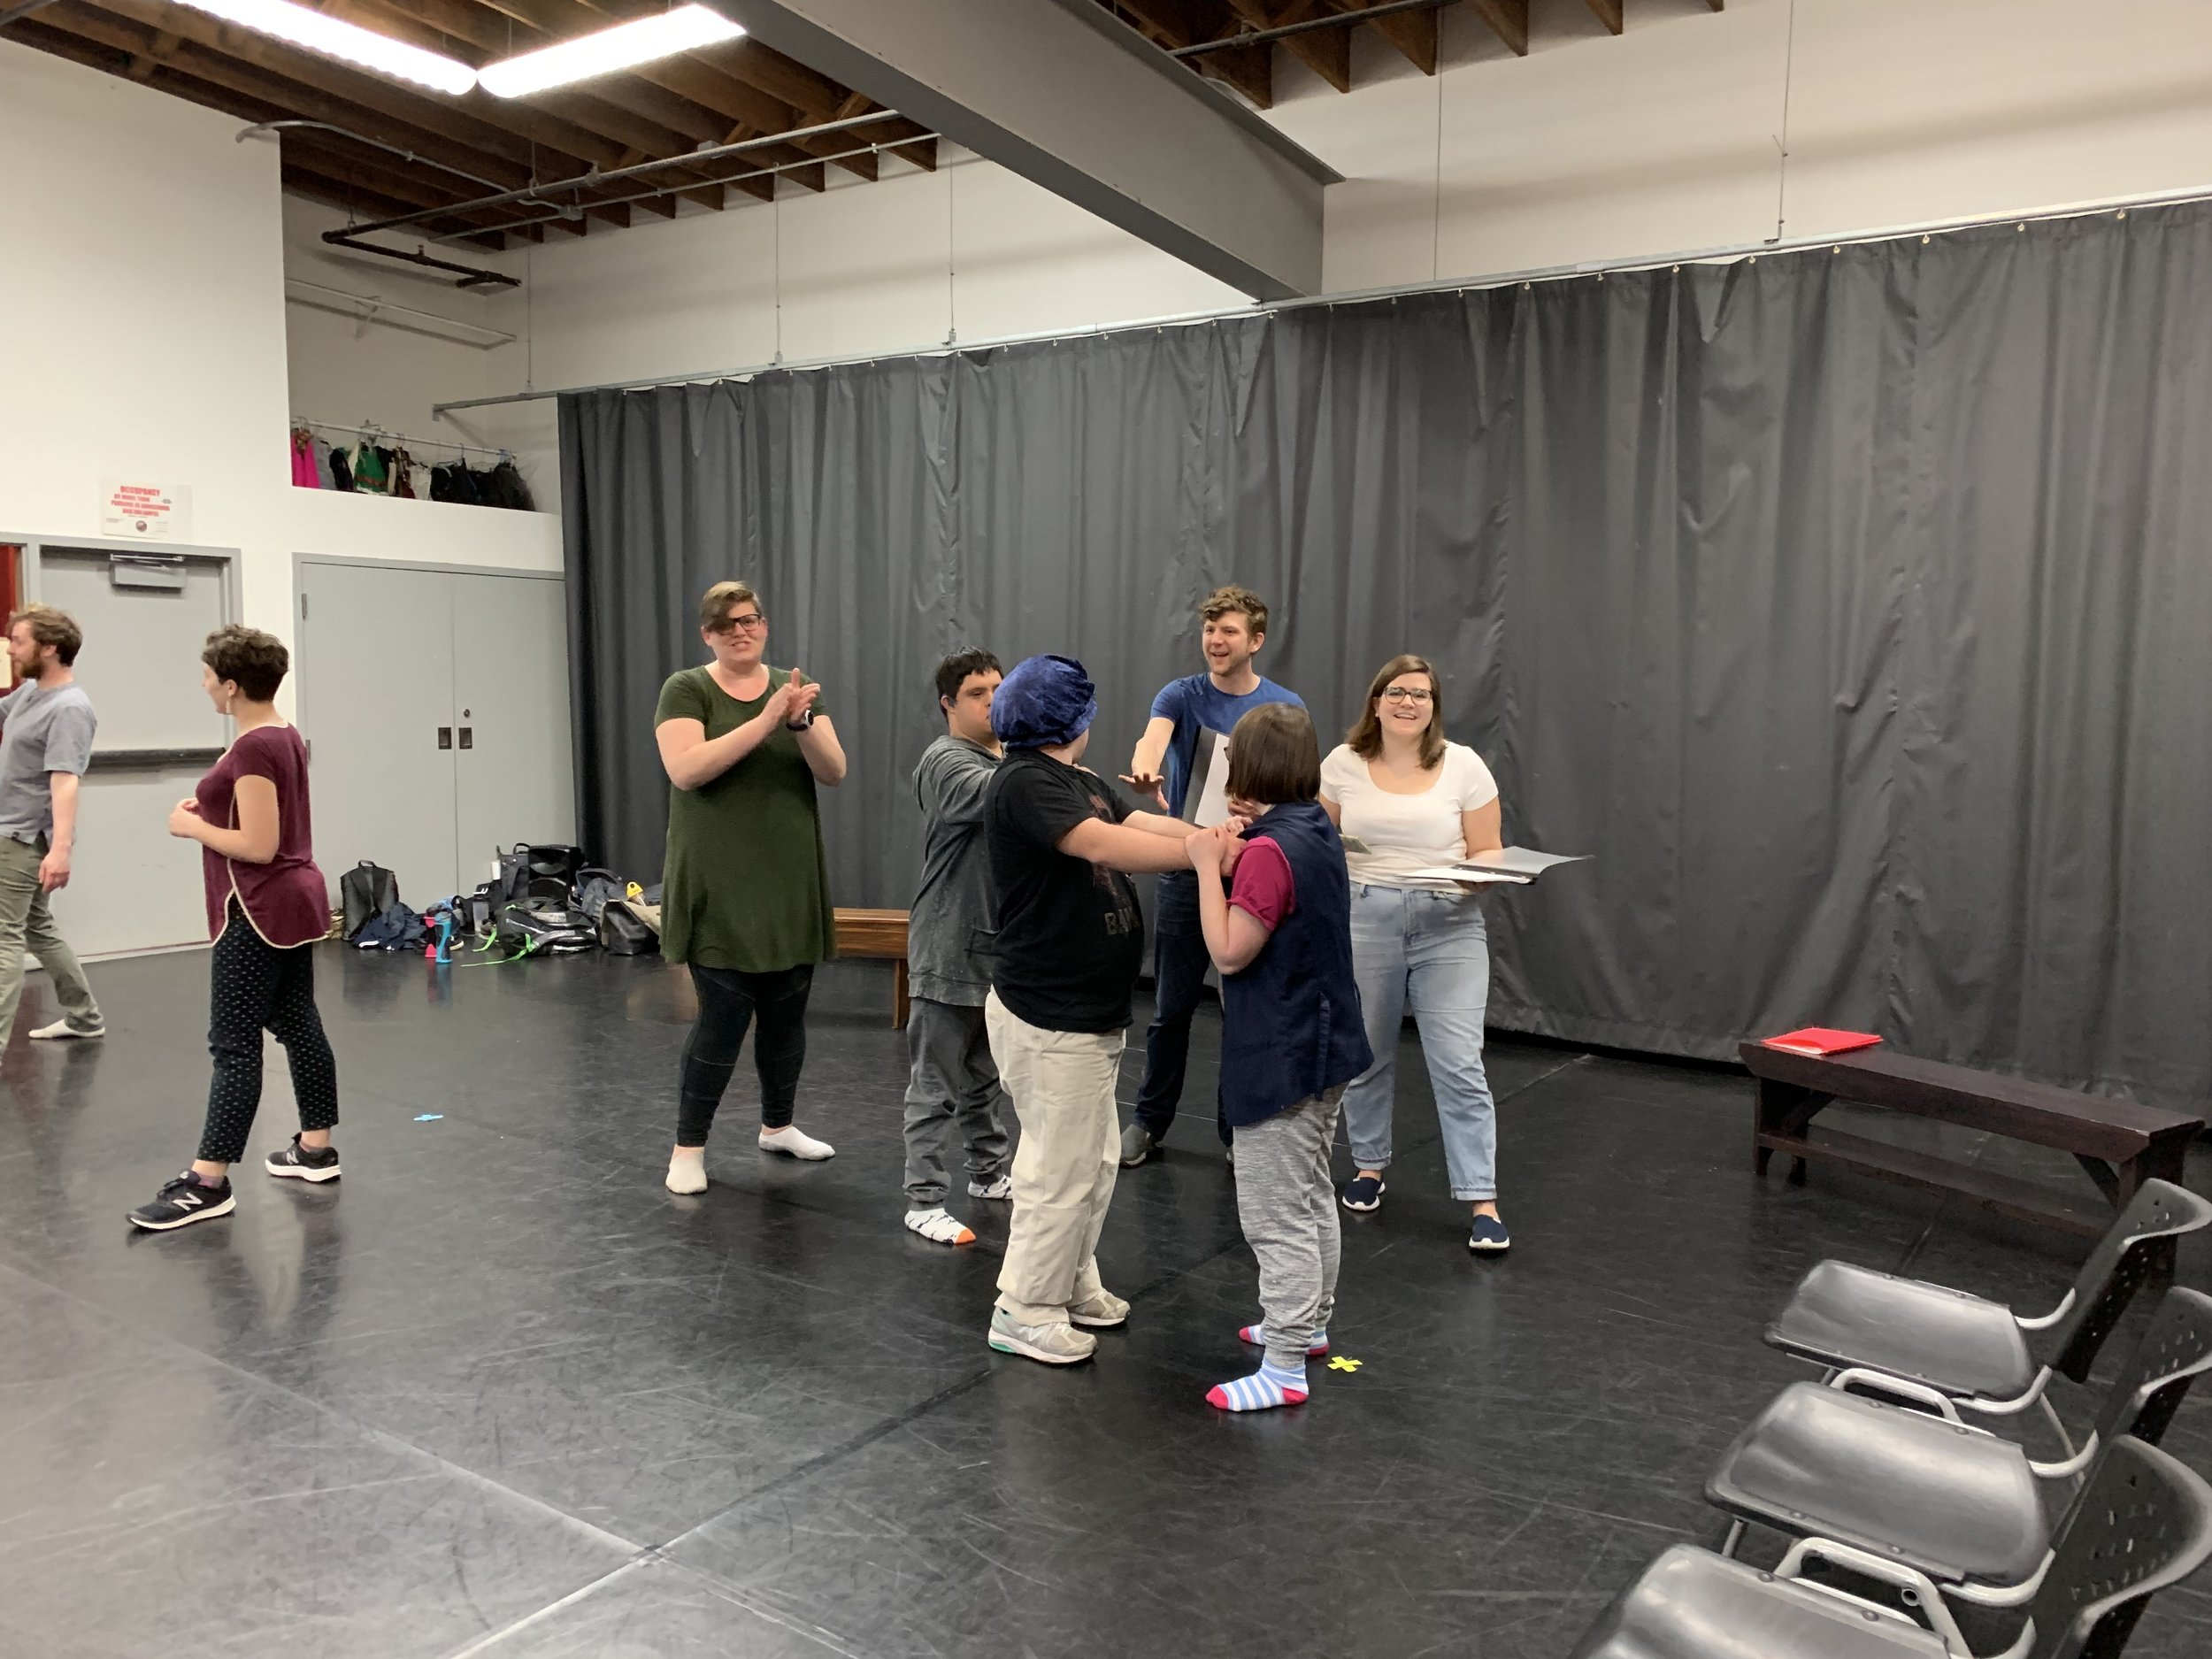 Christian and Anna as the warring DeBoys brothers Orlando and Oliver rehearsing the prologue.